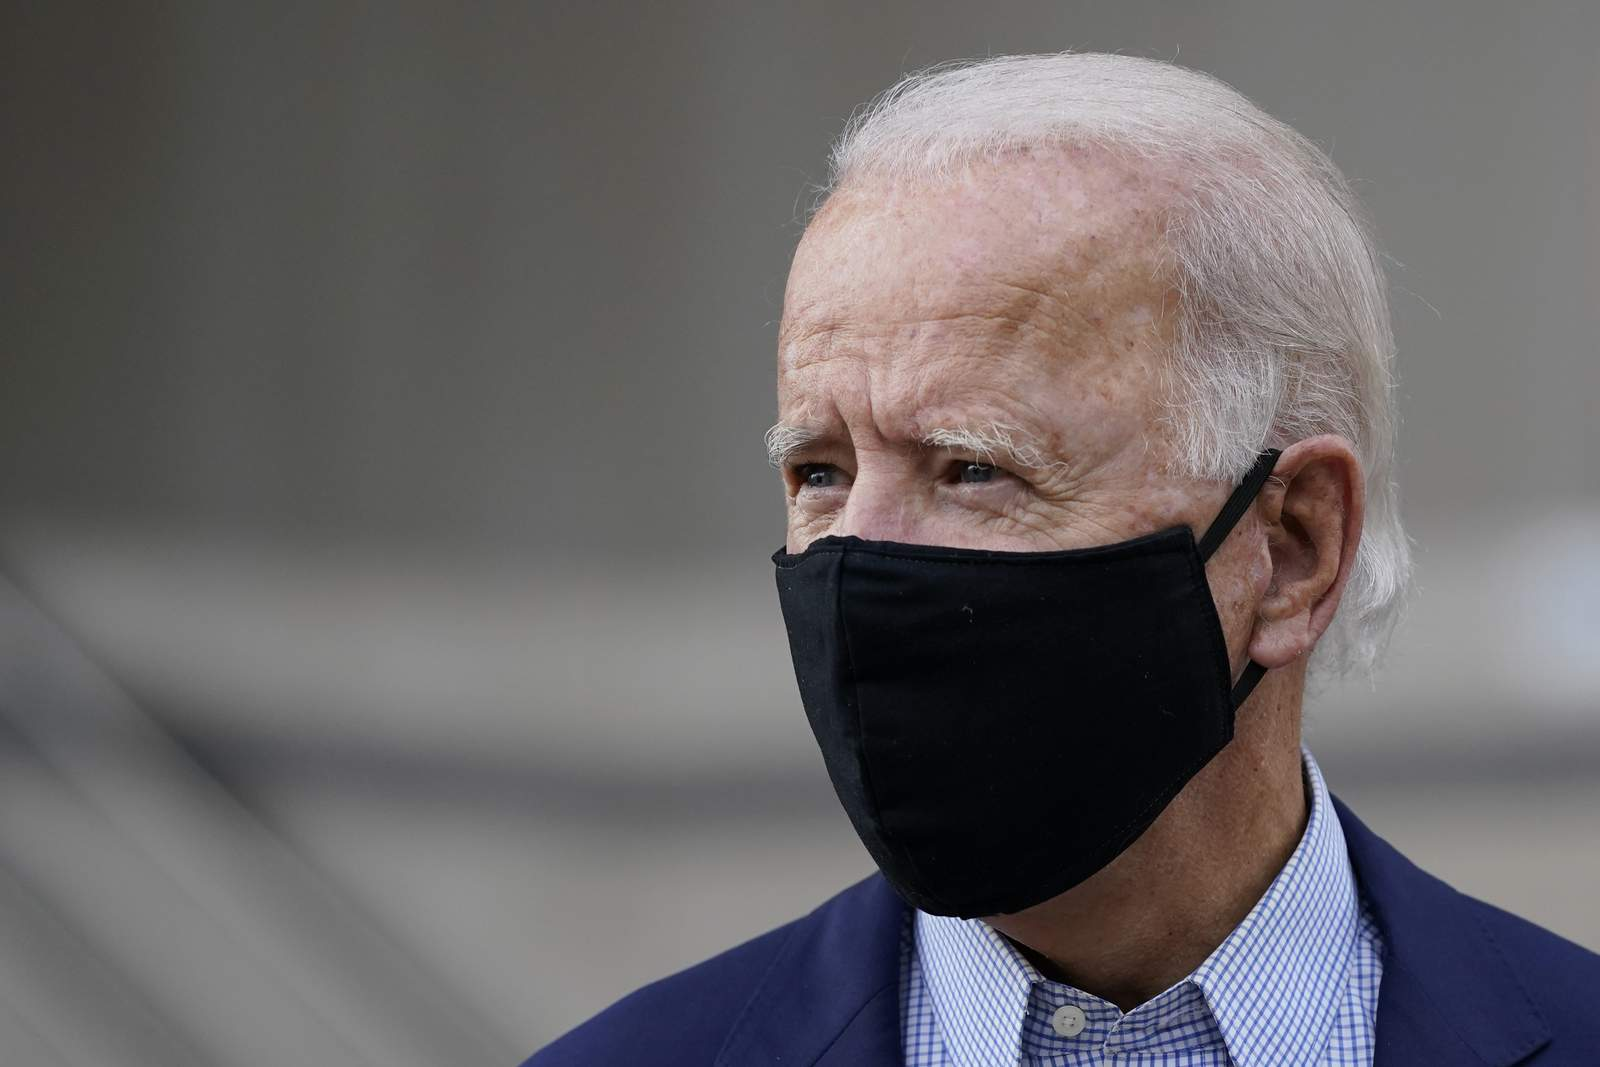 Fact Check Photo Of Joe Biden At Detroit Athletic Club Is From March